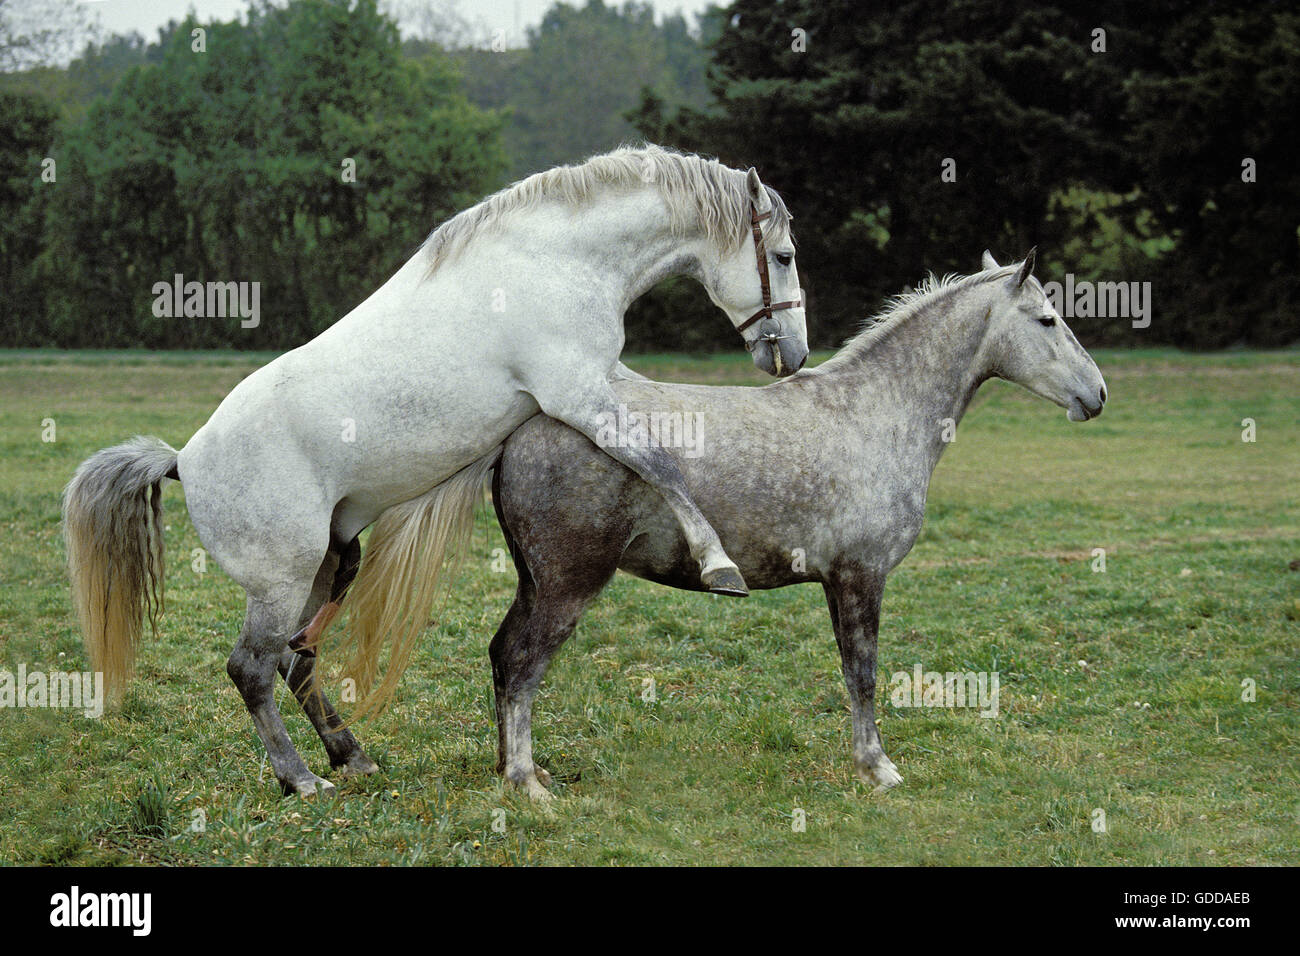 Lipizzan Horse, Pair Mating Stock Photo: 111546355 - Alamy